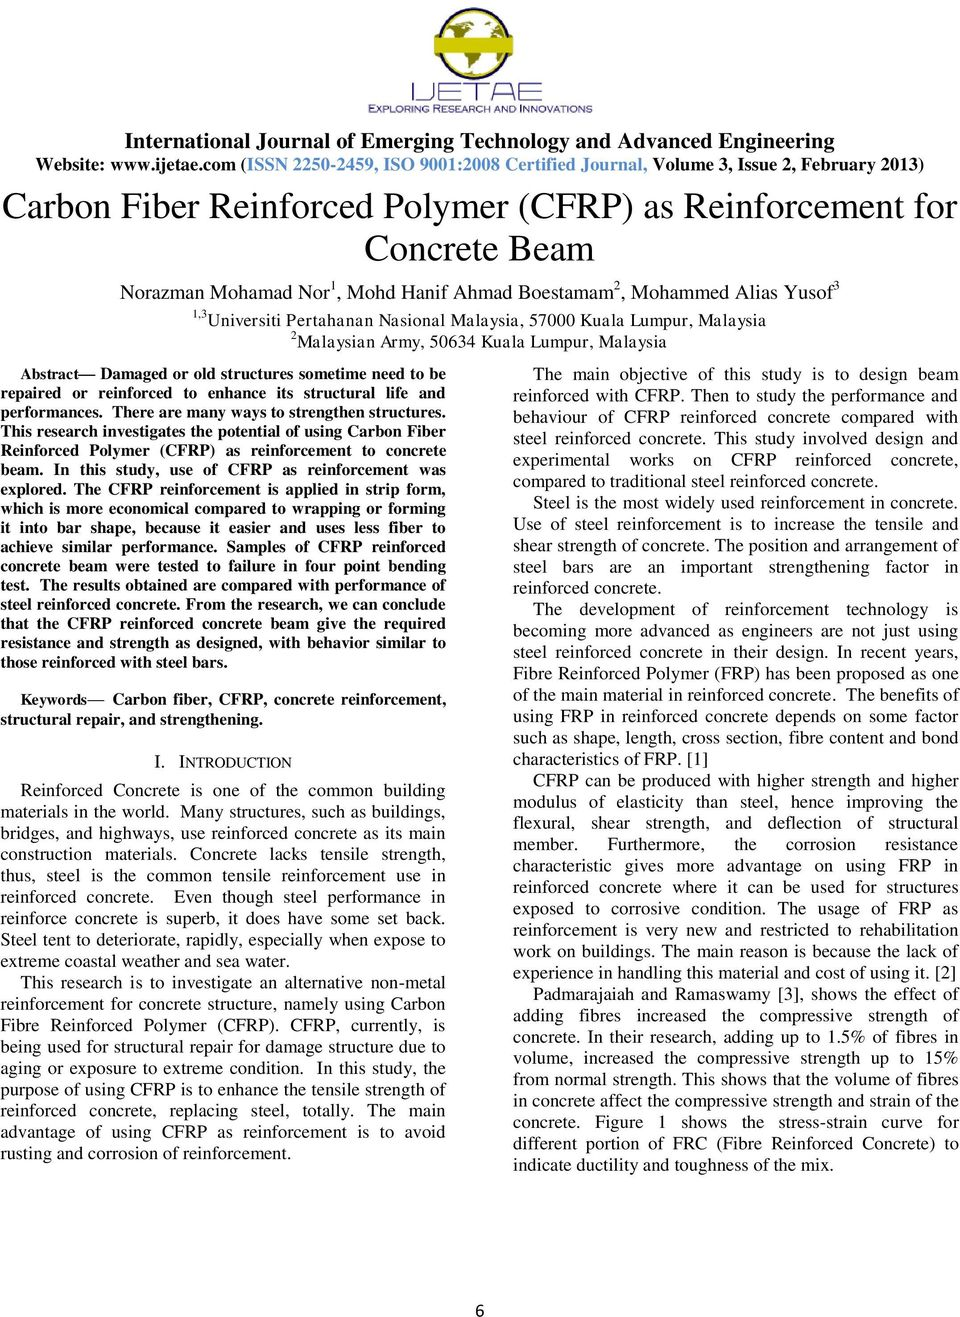 There are many ways to strengthen structures. This research investigates the potential of using Carbon Fiber Reinforced Polymer (CFRP) as reinforcement to concrete beam.